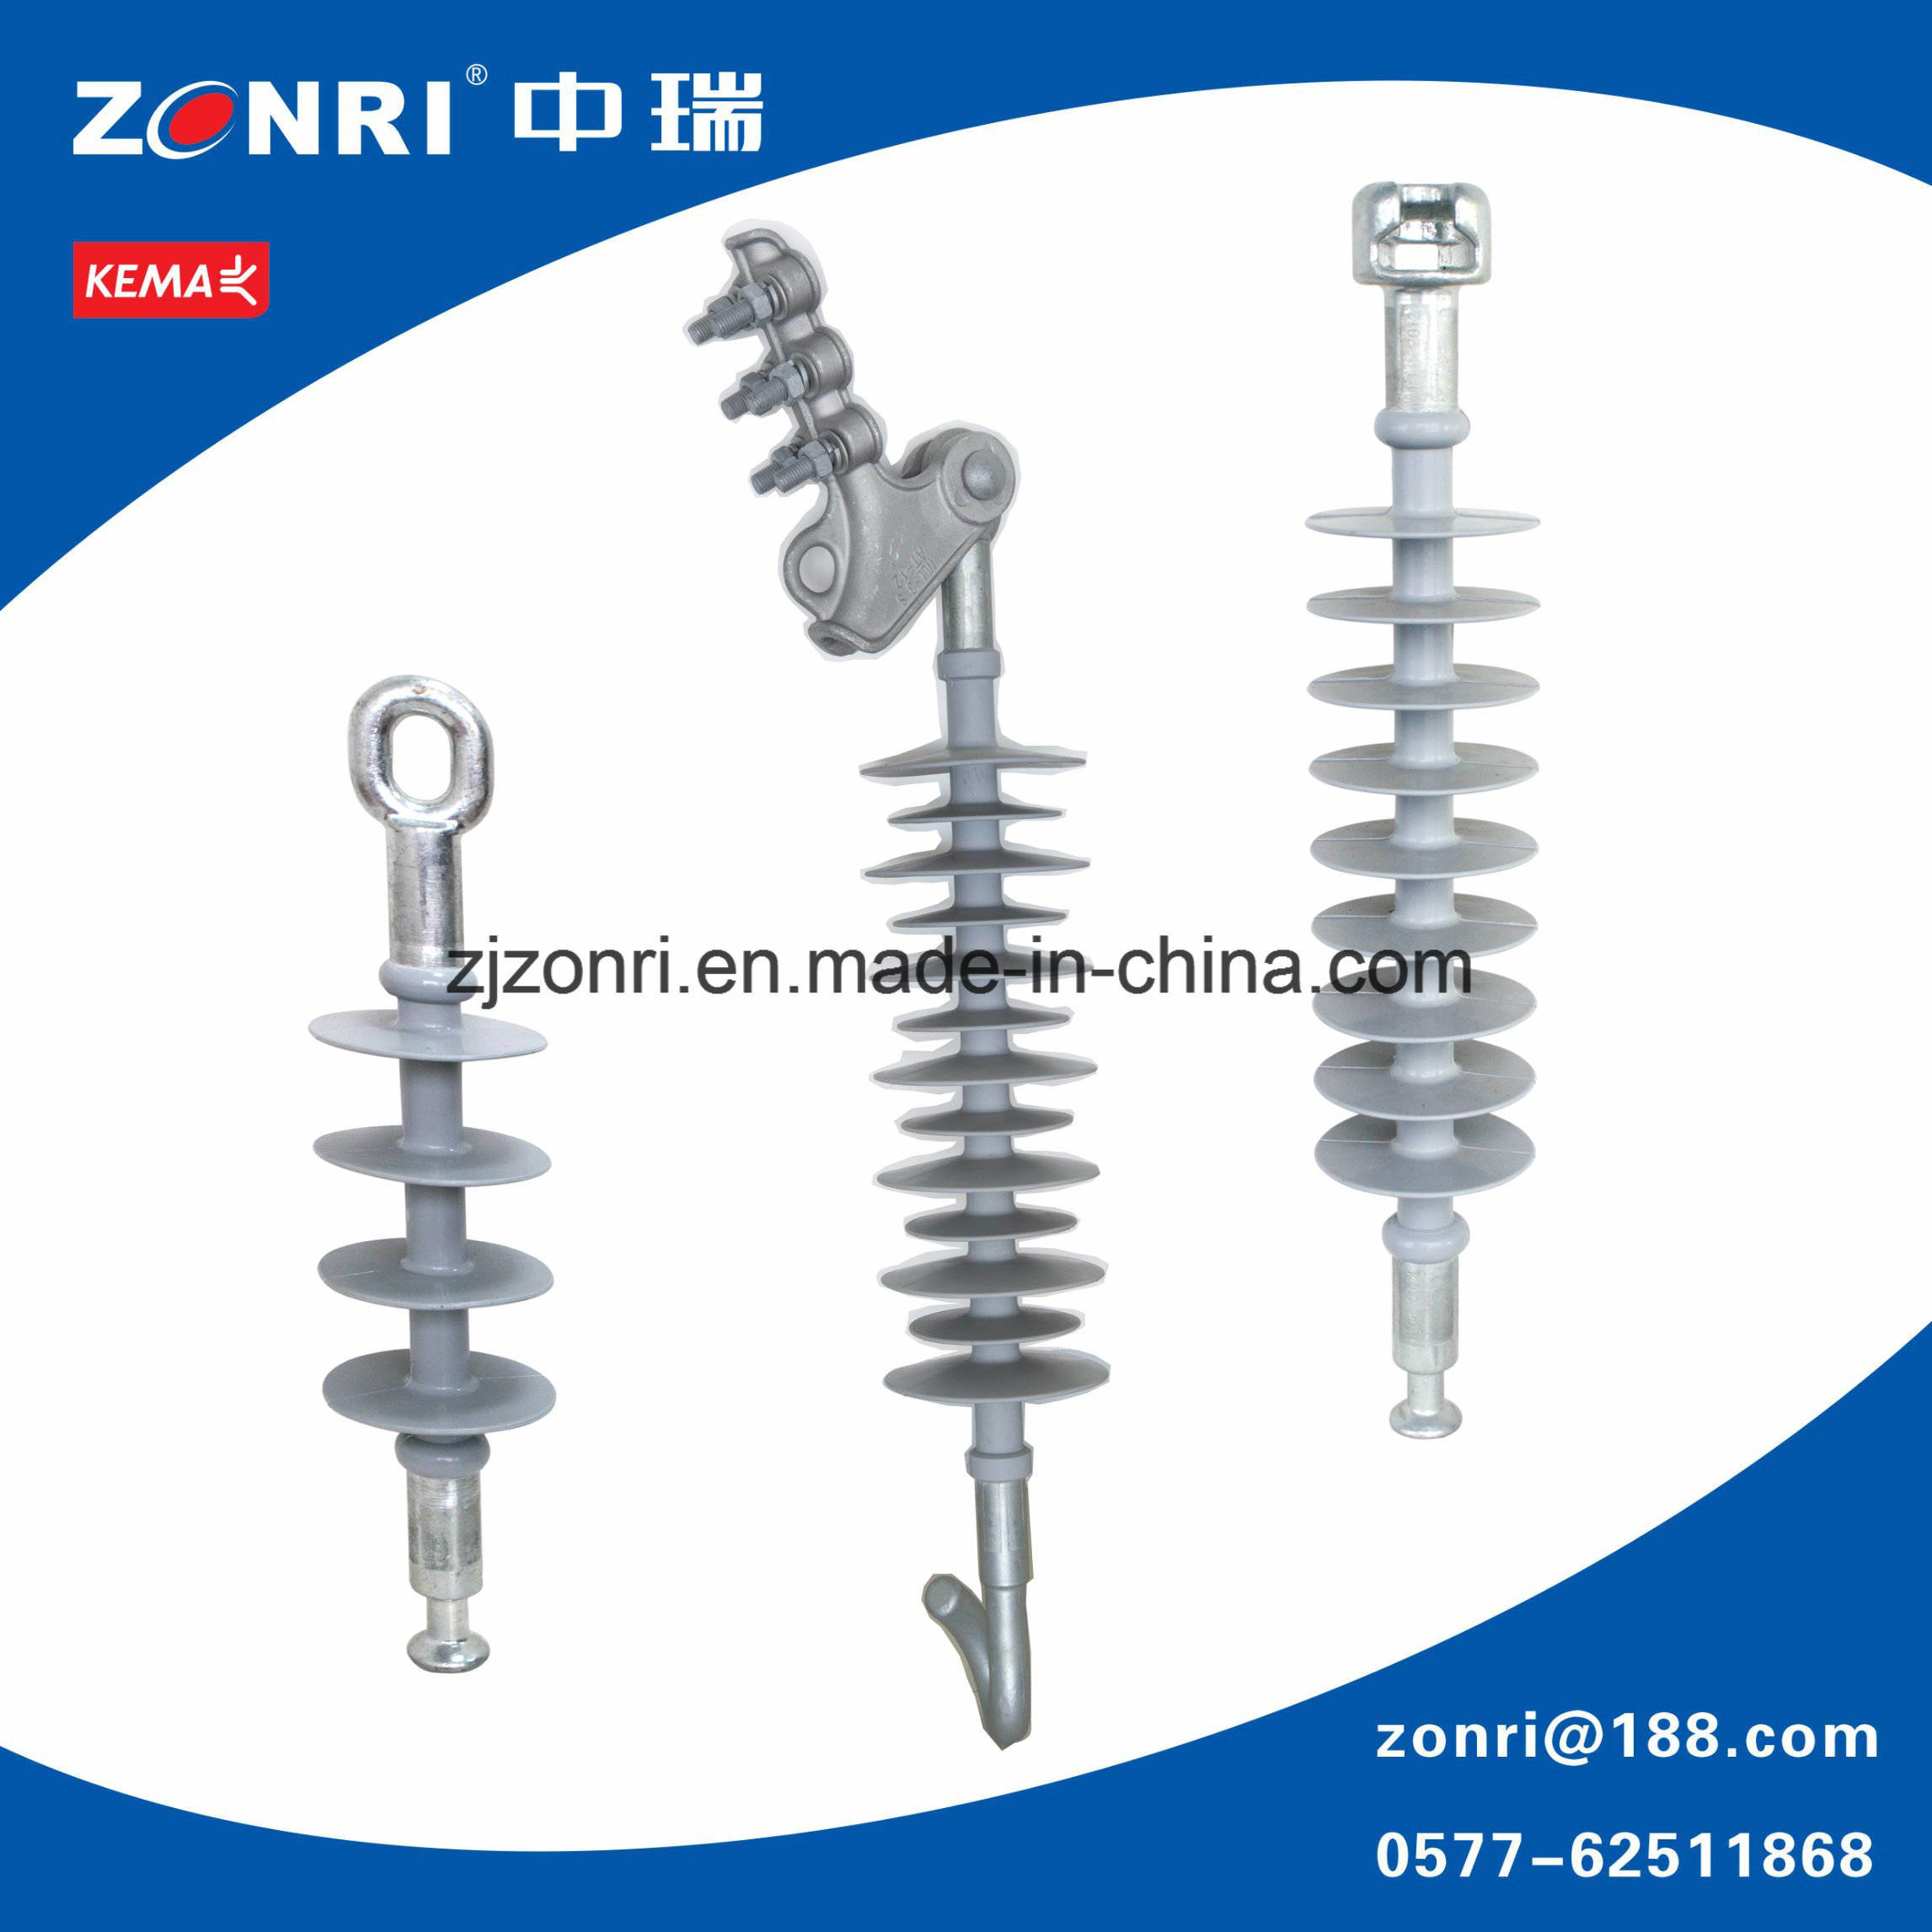 Composite Tension Insulator / Suspension Insulator (FXBW-24/70 (UT)) 24kv 70kn